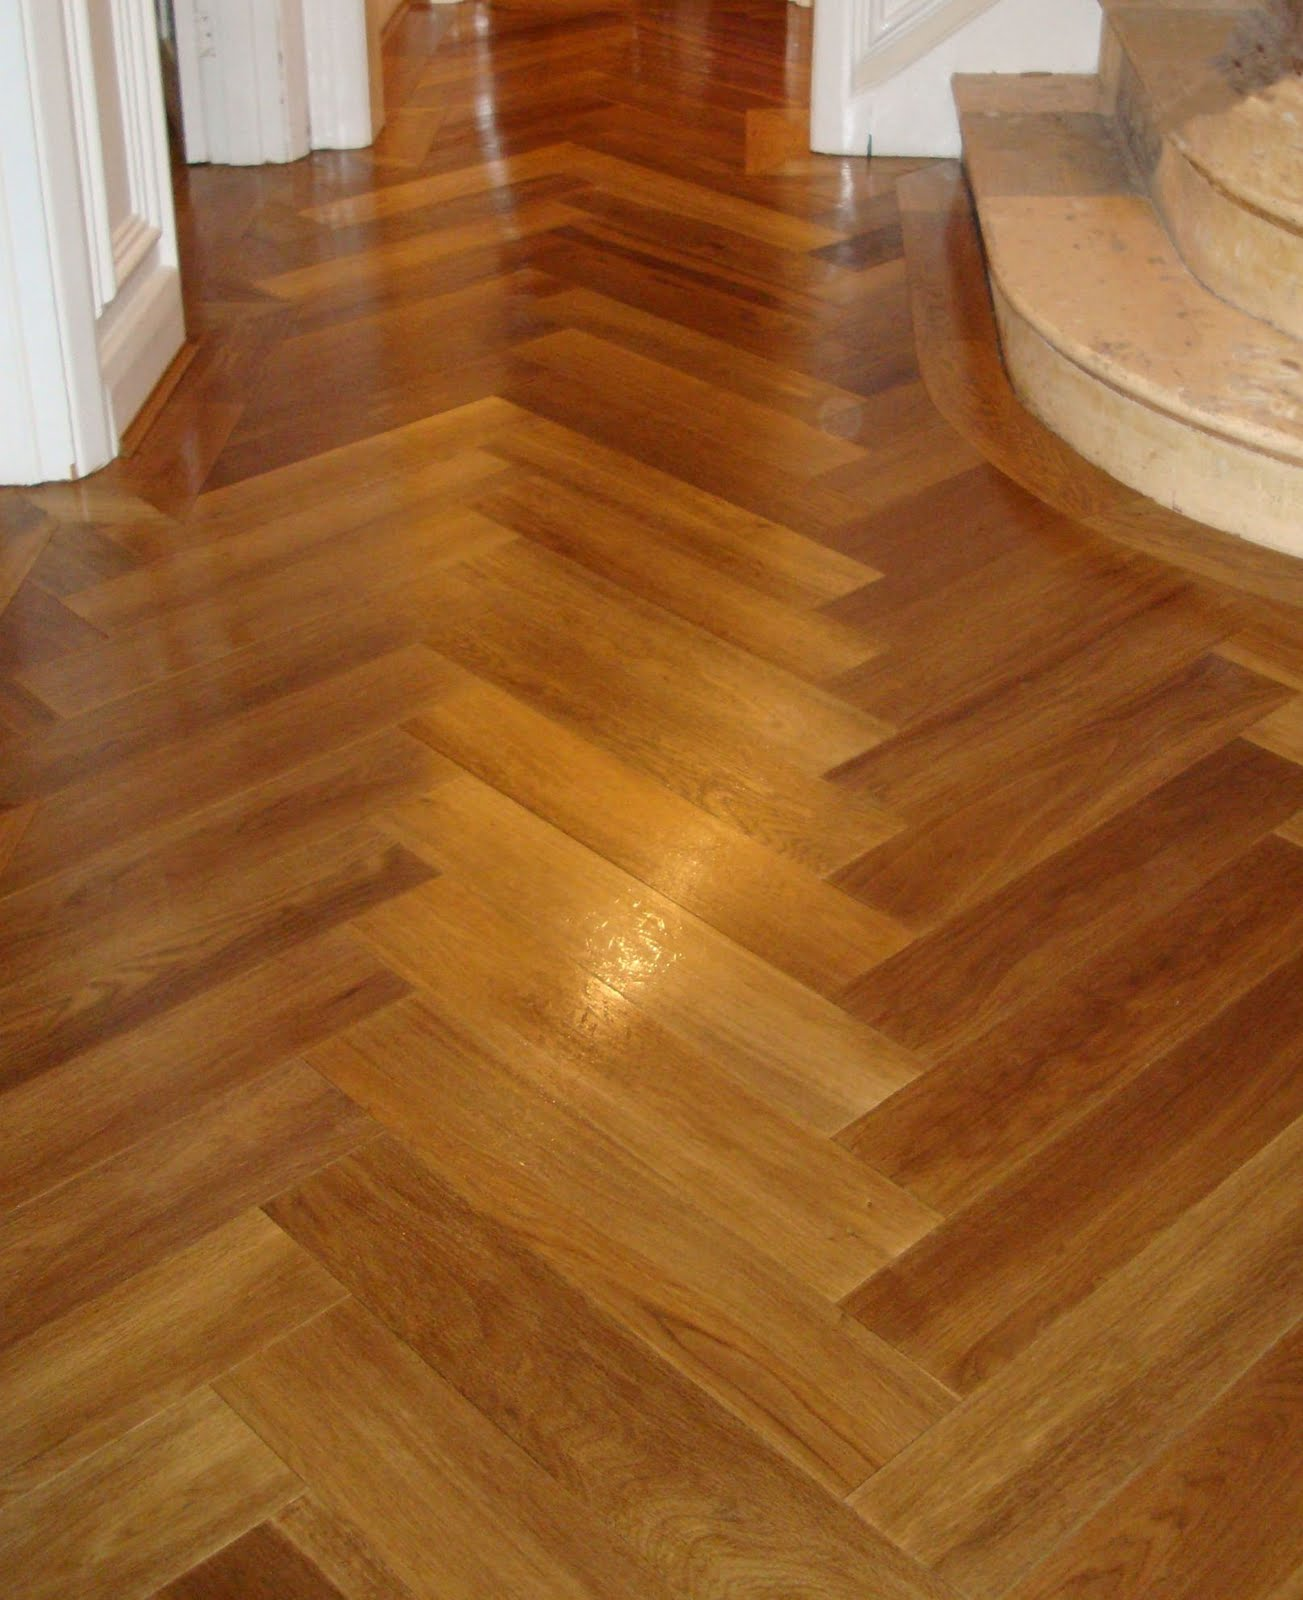 design wood flooring ... - Wood Floor Design Ideas